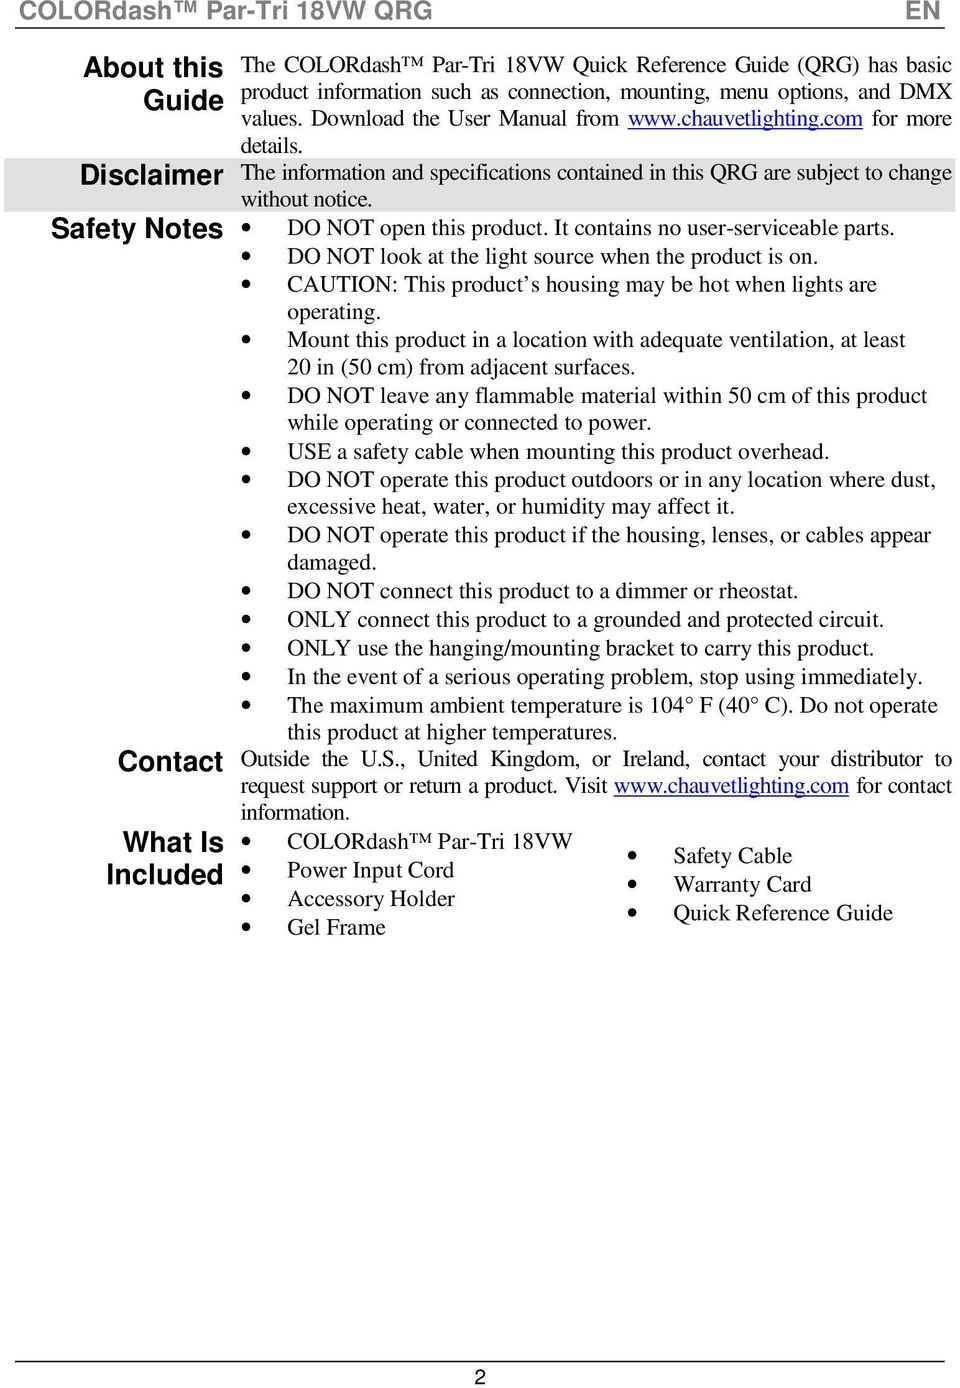 Safety Notes DO NOT open this product. It contains no user-serviceable parts. DO NOT look at the light source when the product is on.